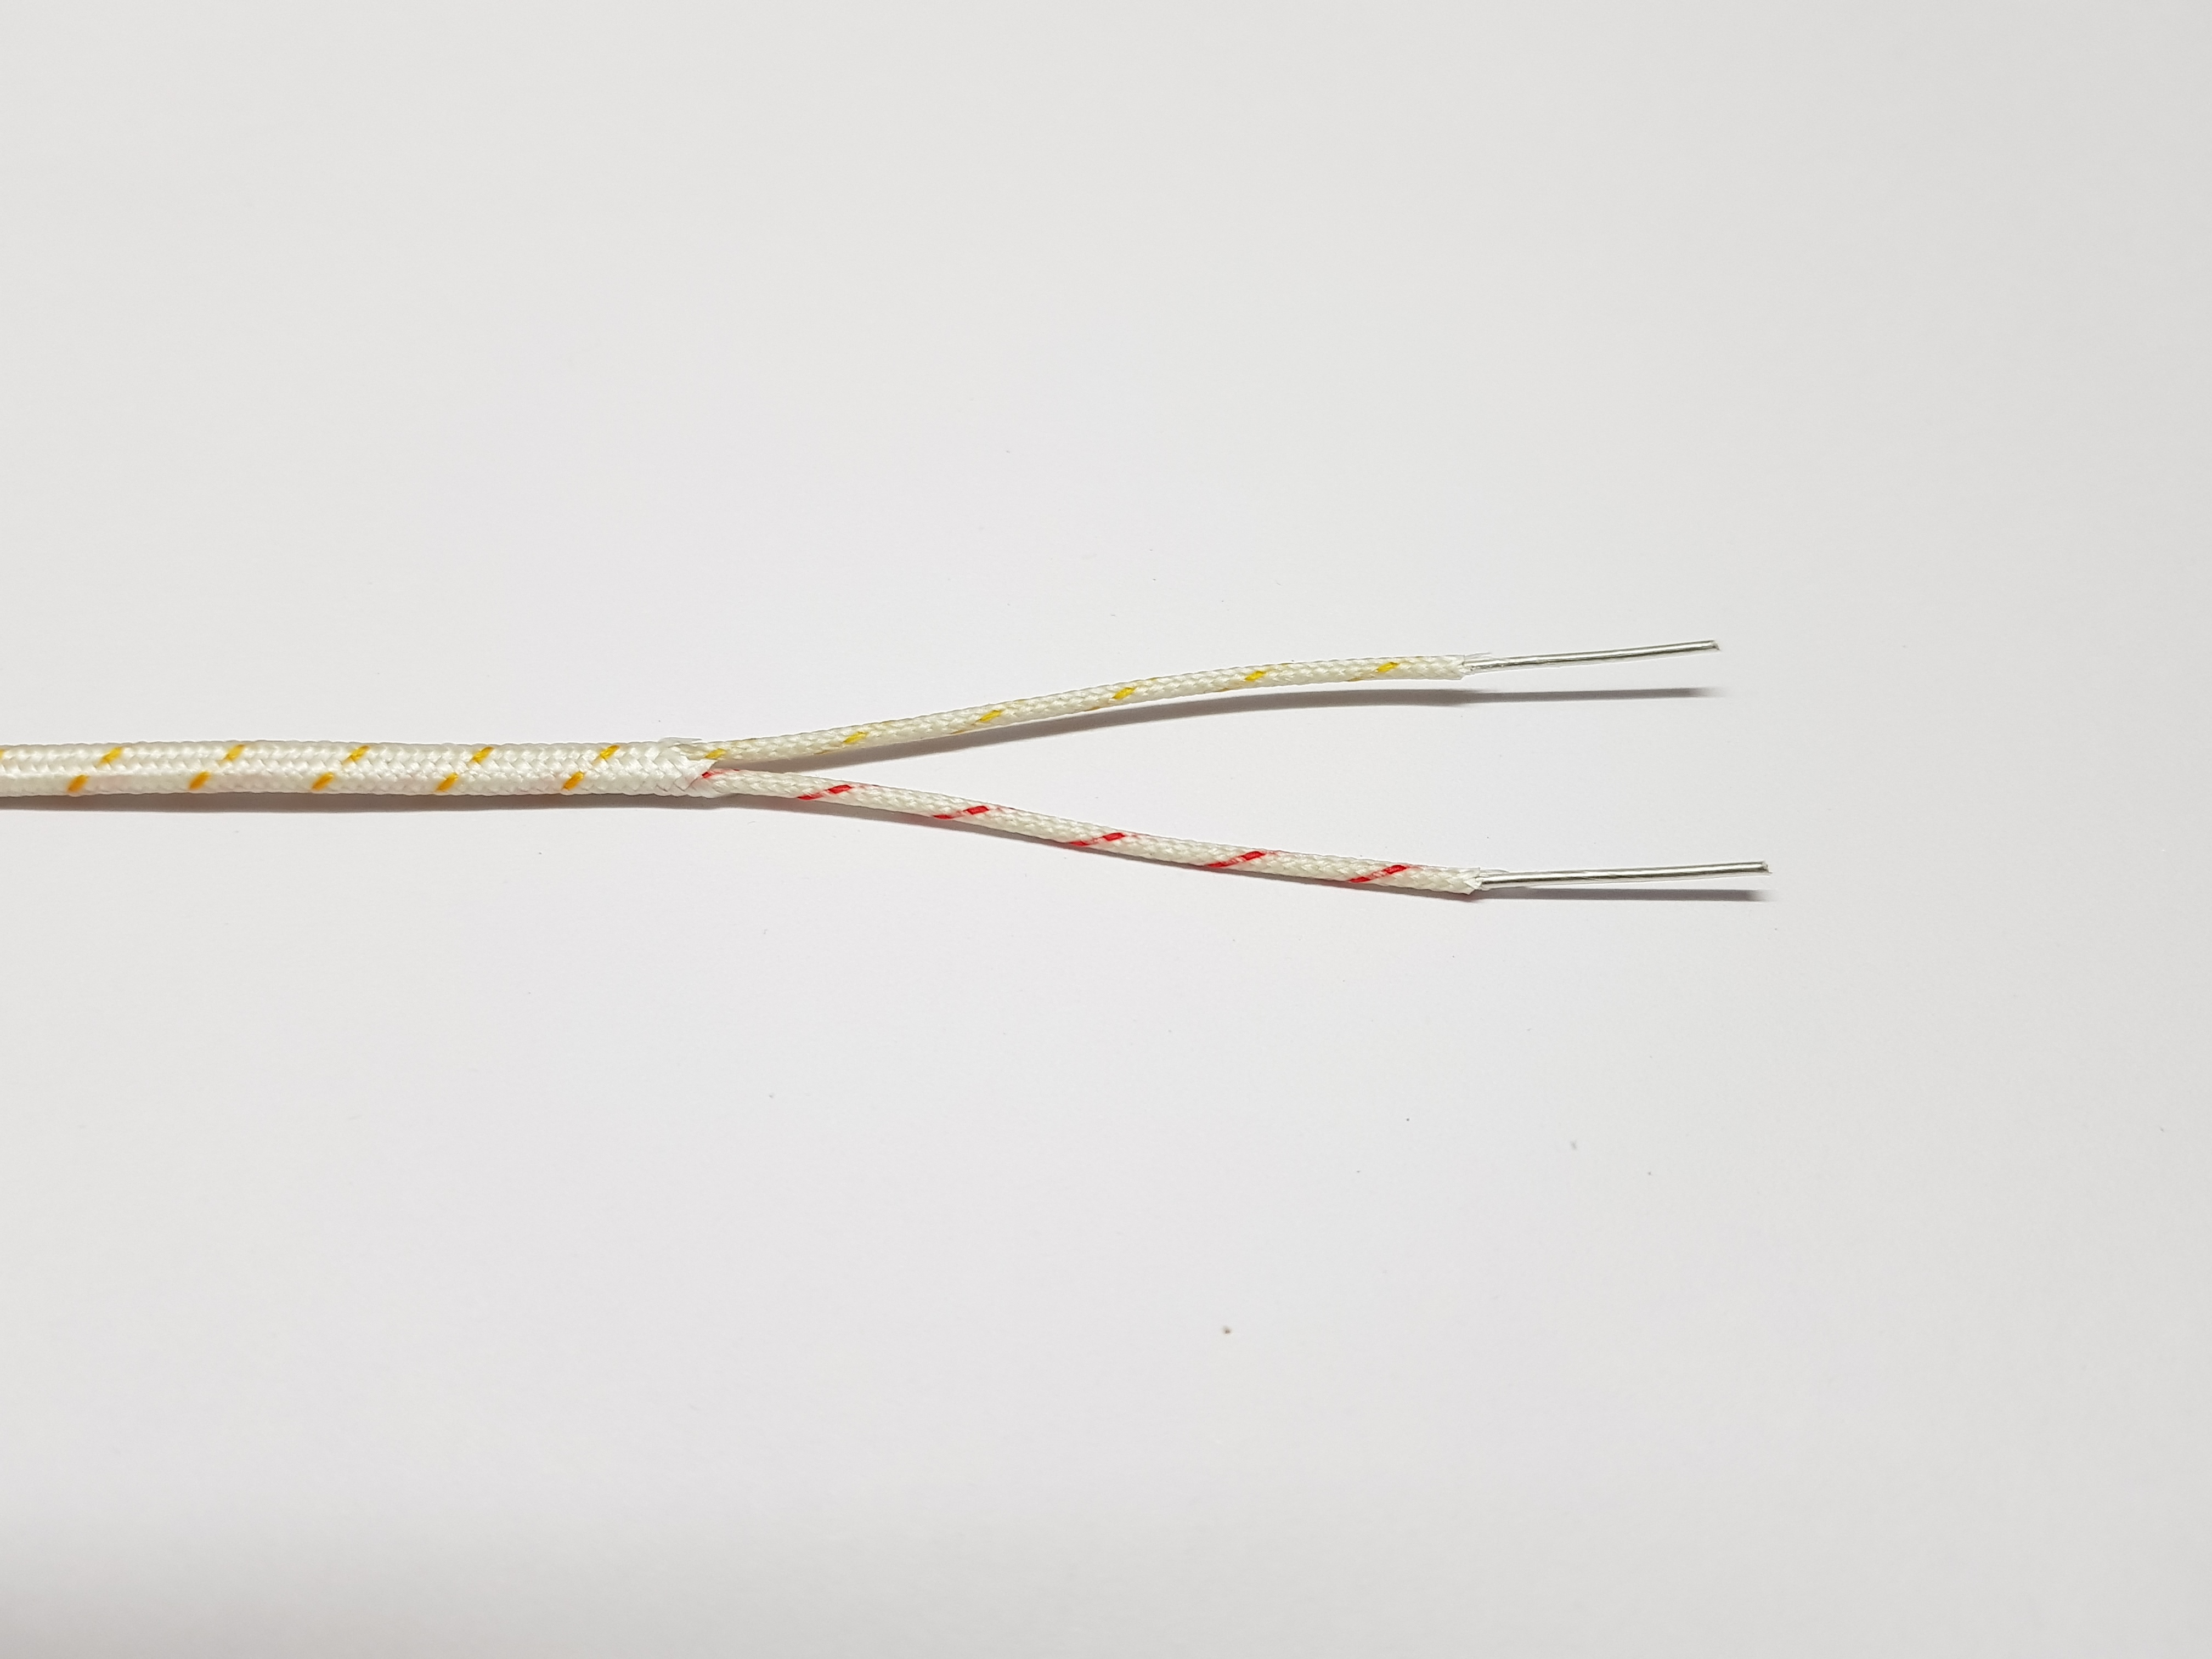 Lead Cable for thermocouple